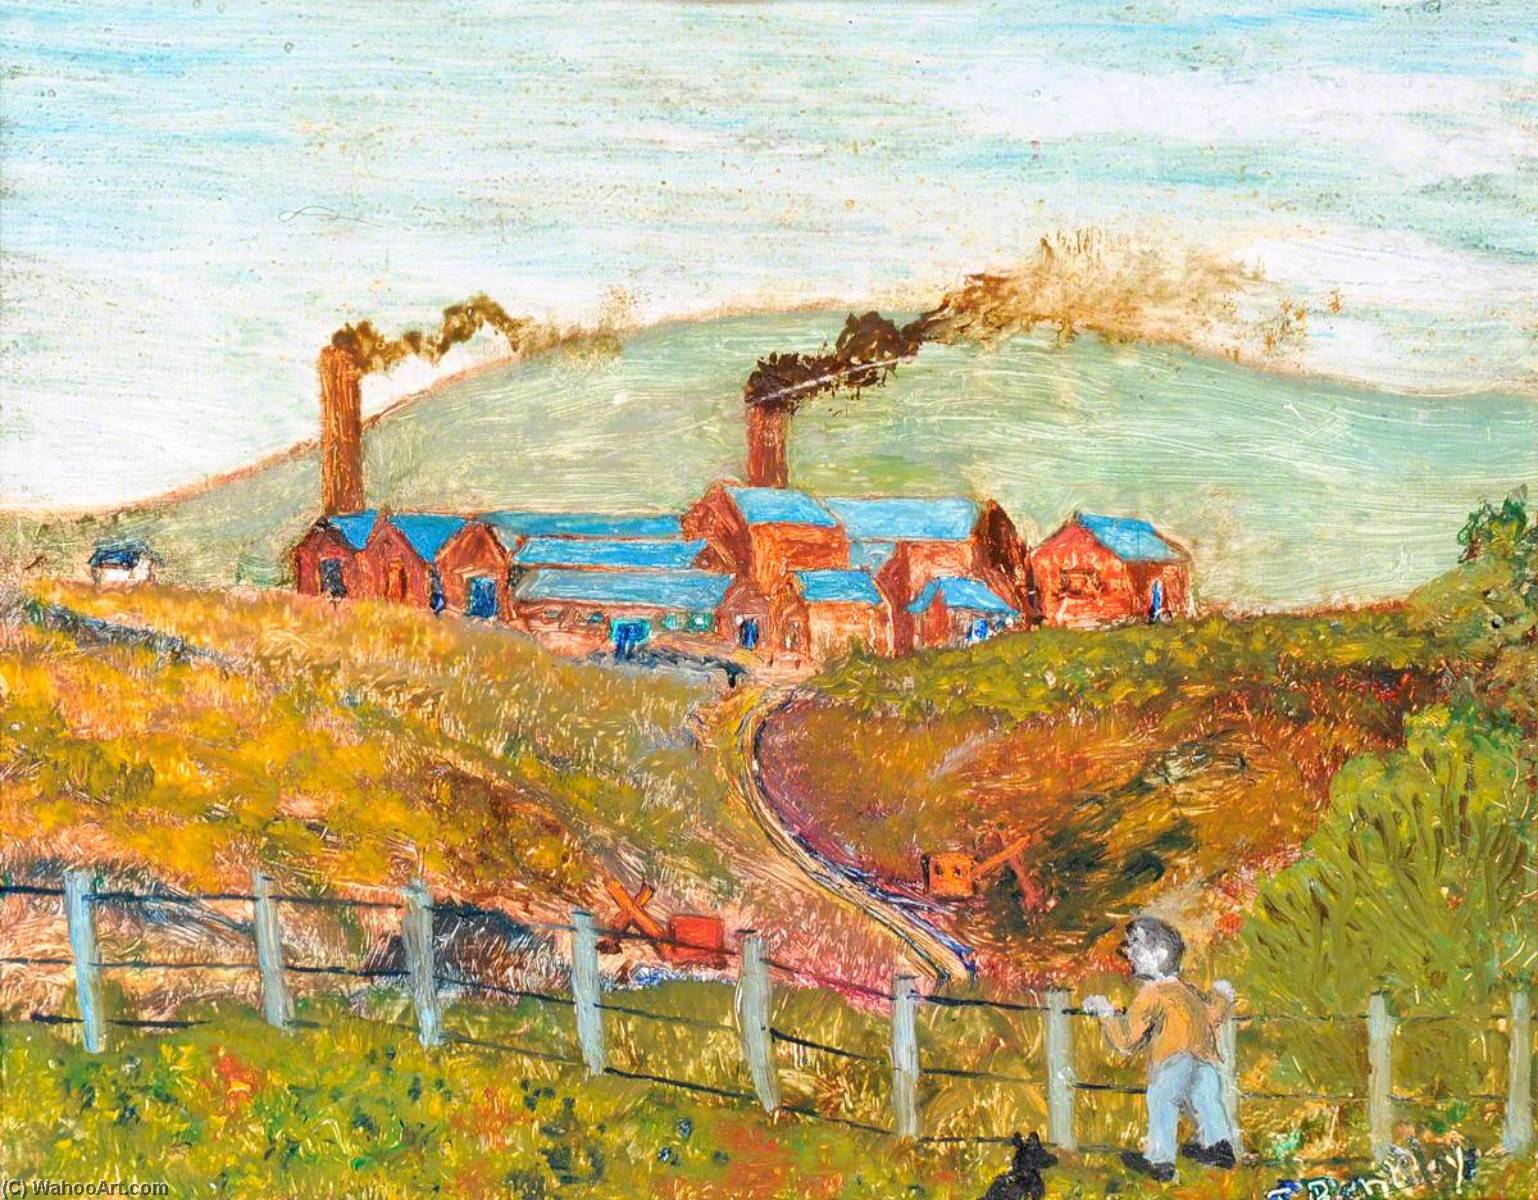 Lane End Brickworks, Buckley, 1996, Oil On Canvas by James Bentley